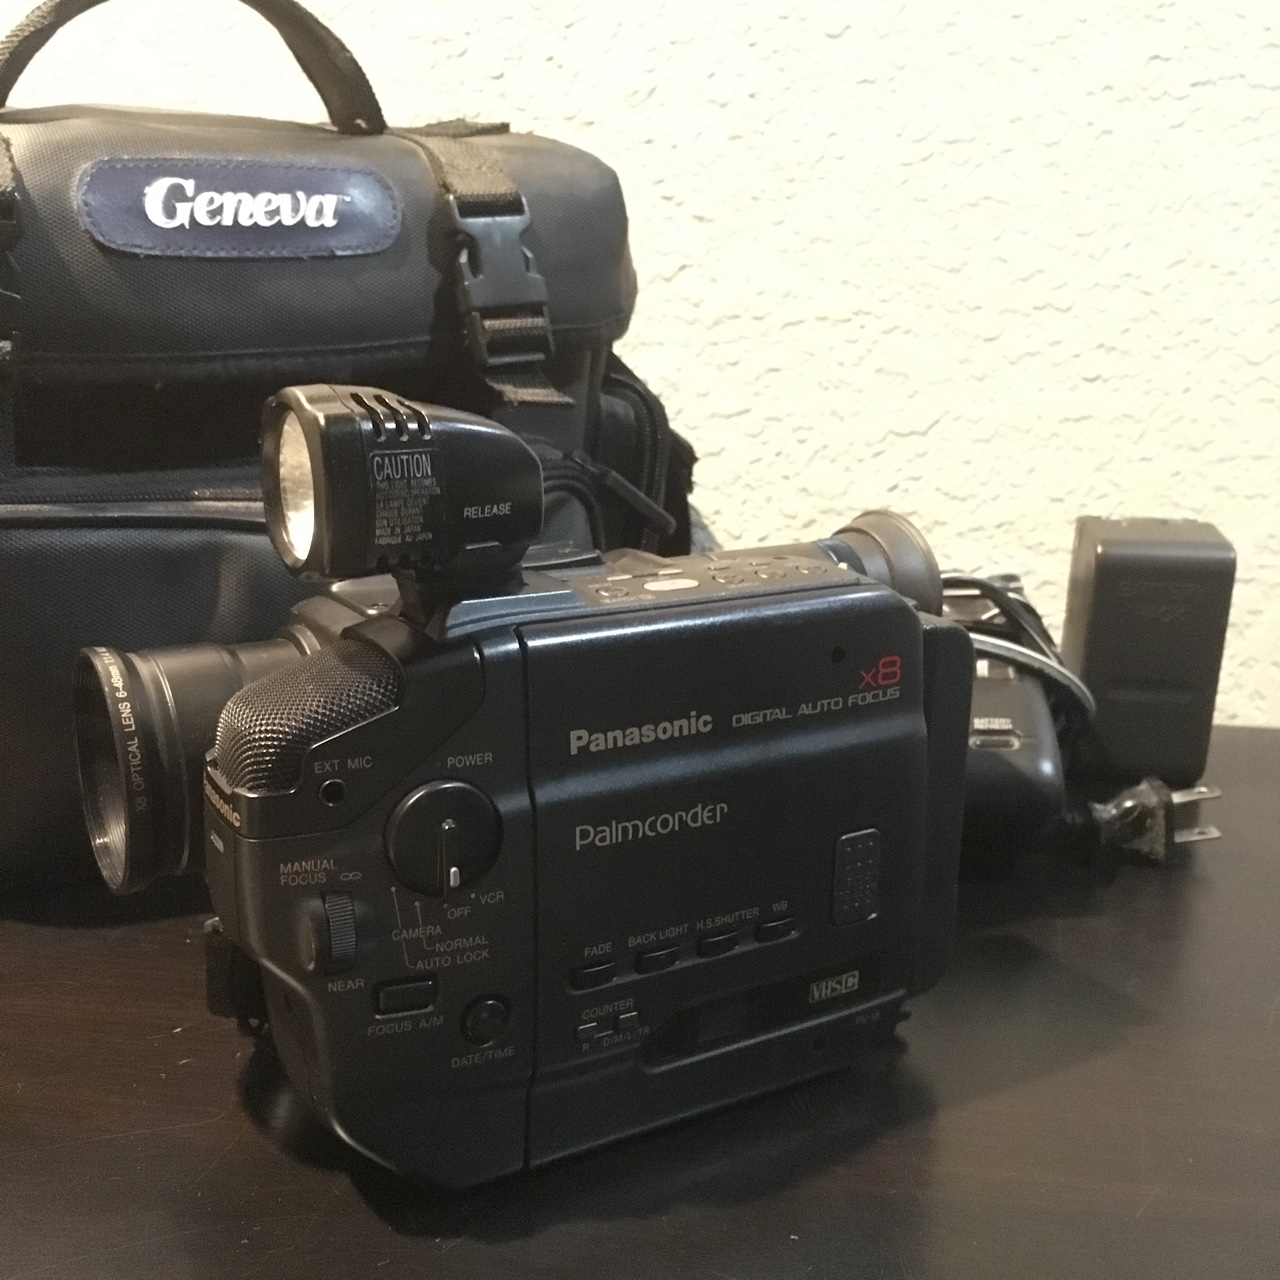 Vintage Panasonic Vhs C Camcorder The Camcorder And Depop